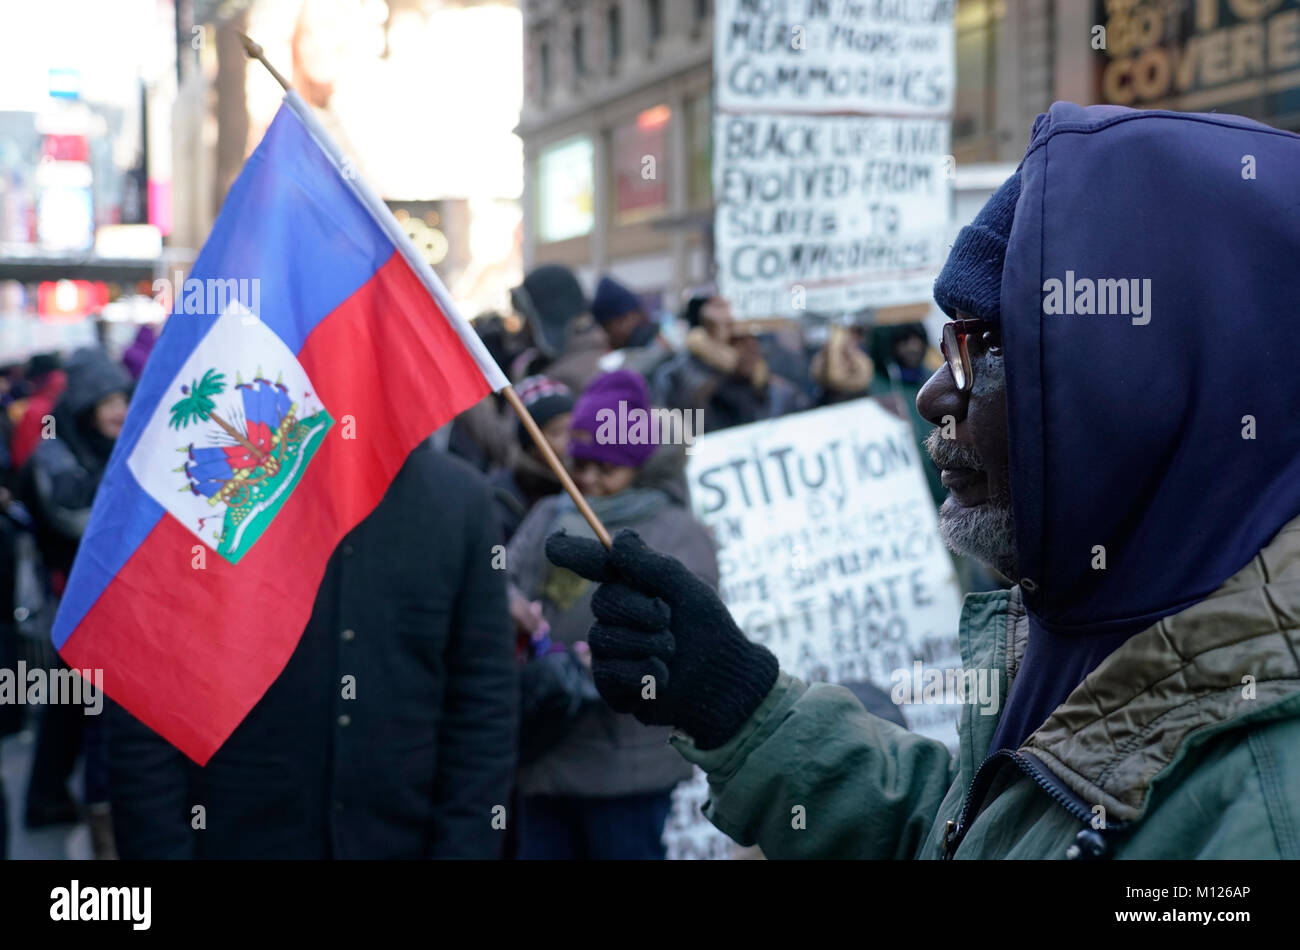 A protestor with a Haitian flag in a rally against racism and President Trump's disparaging comments about Haiti - Stock Image